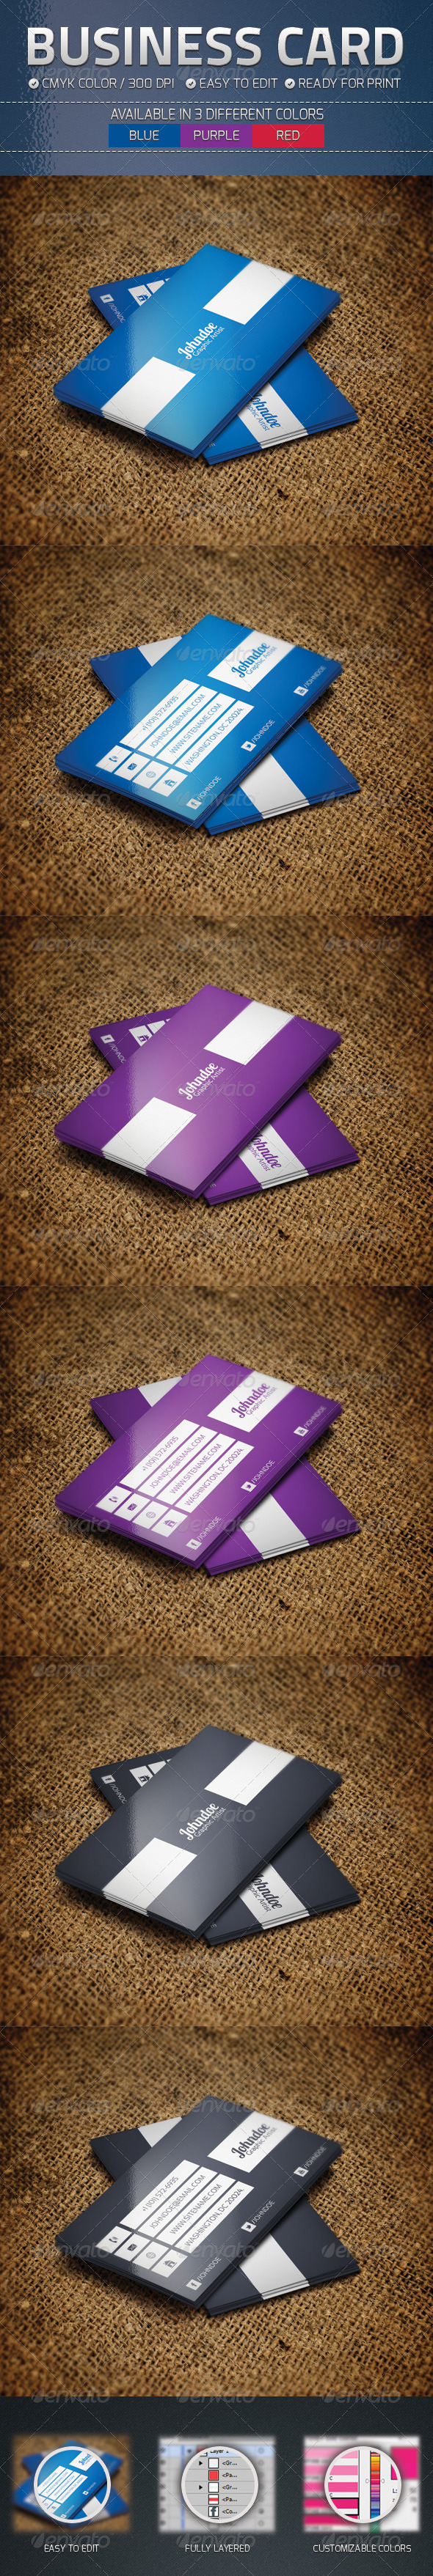 GraphicRiver Business Card 4764426